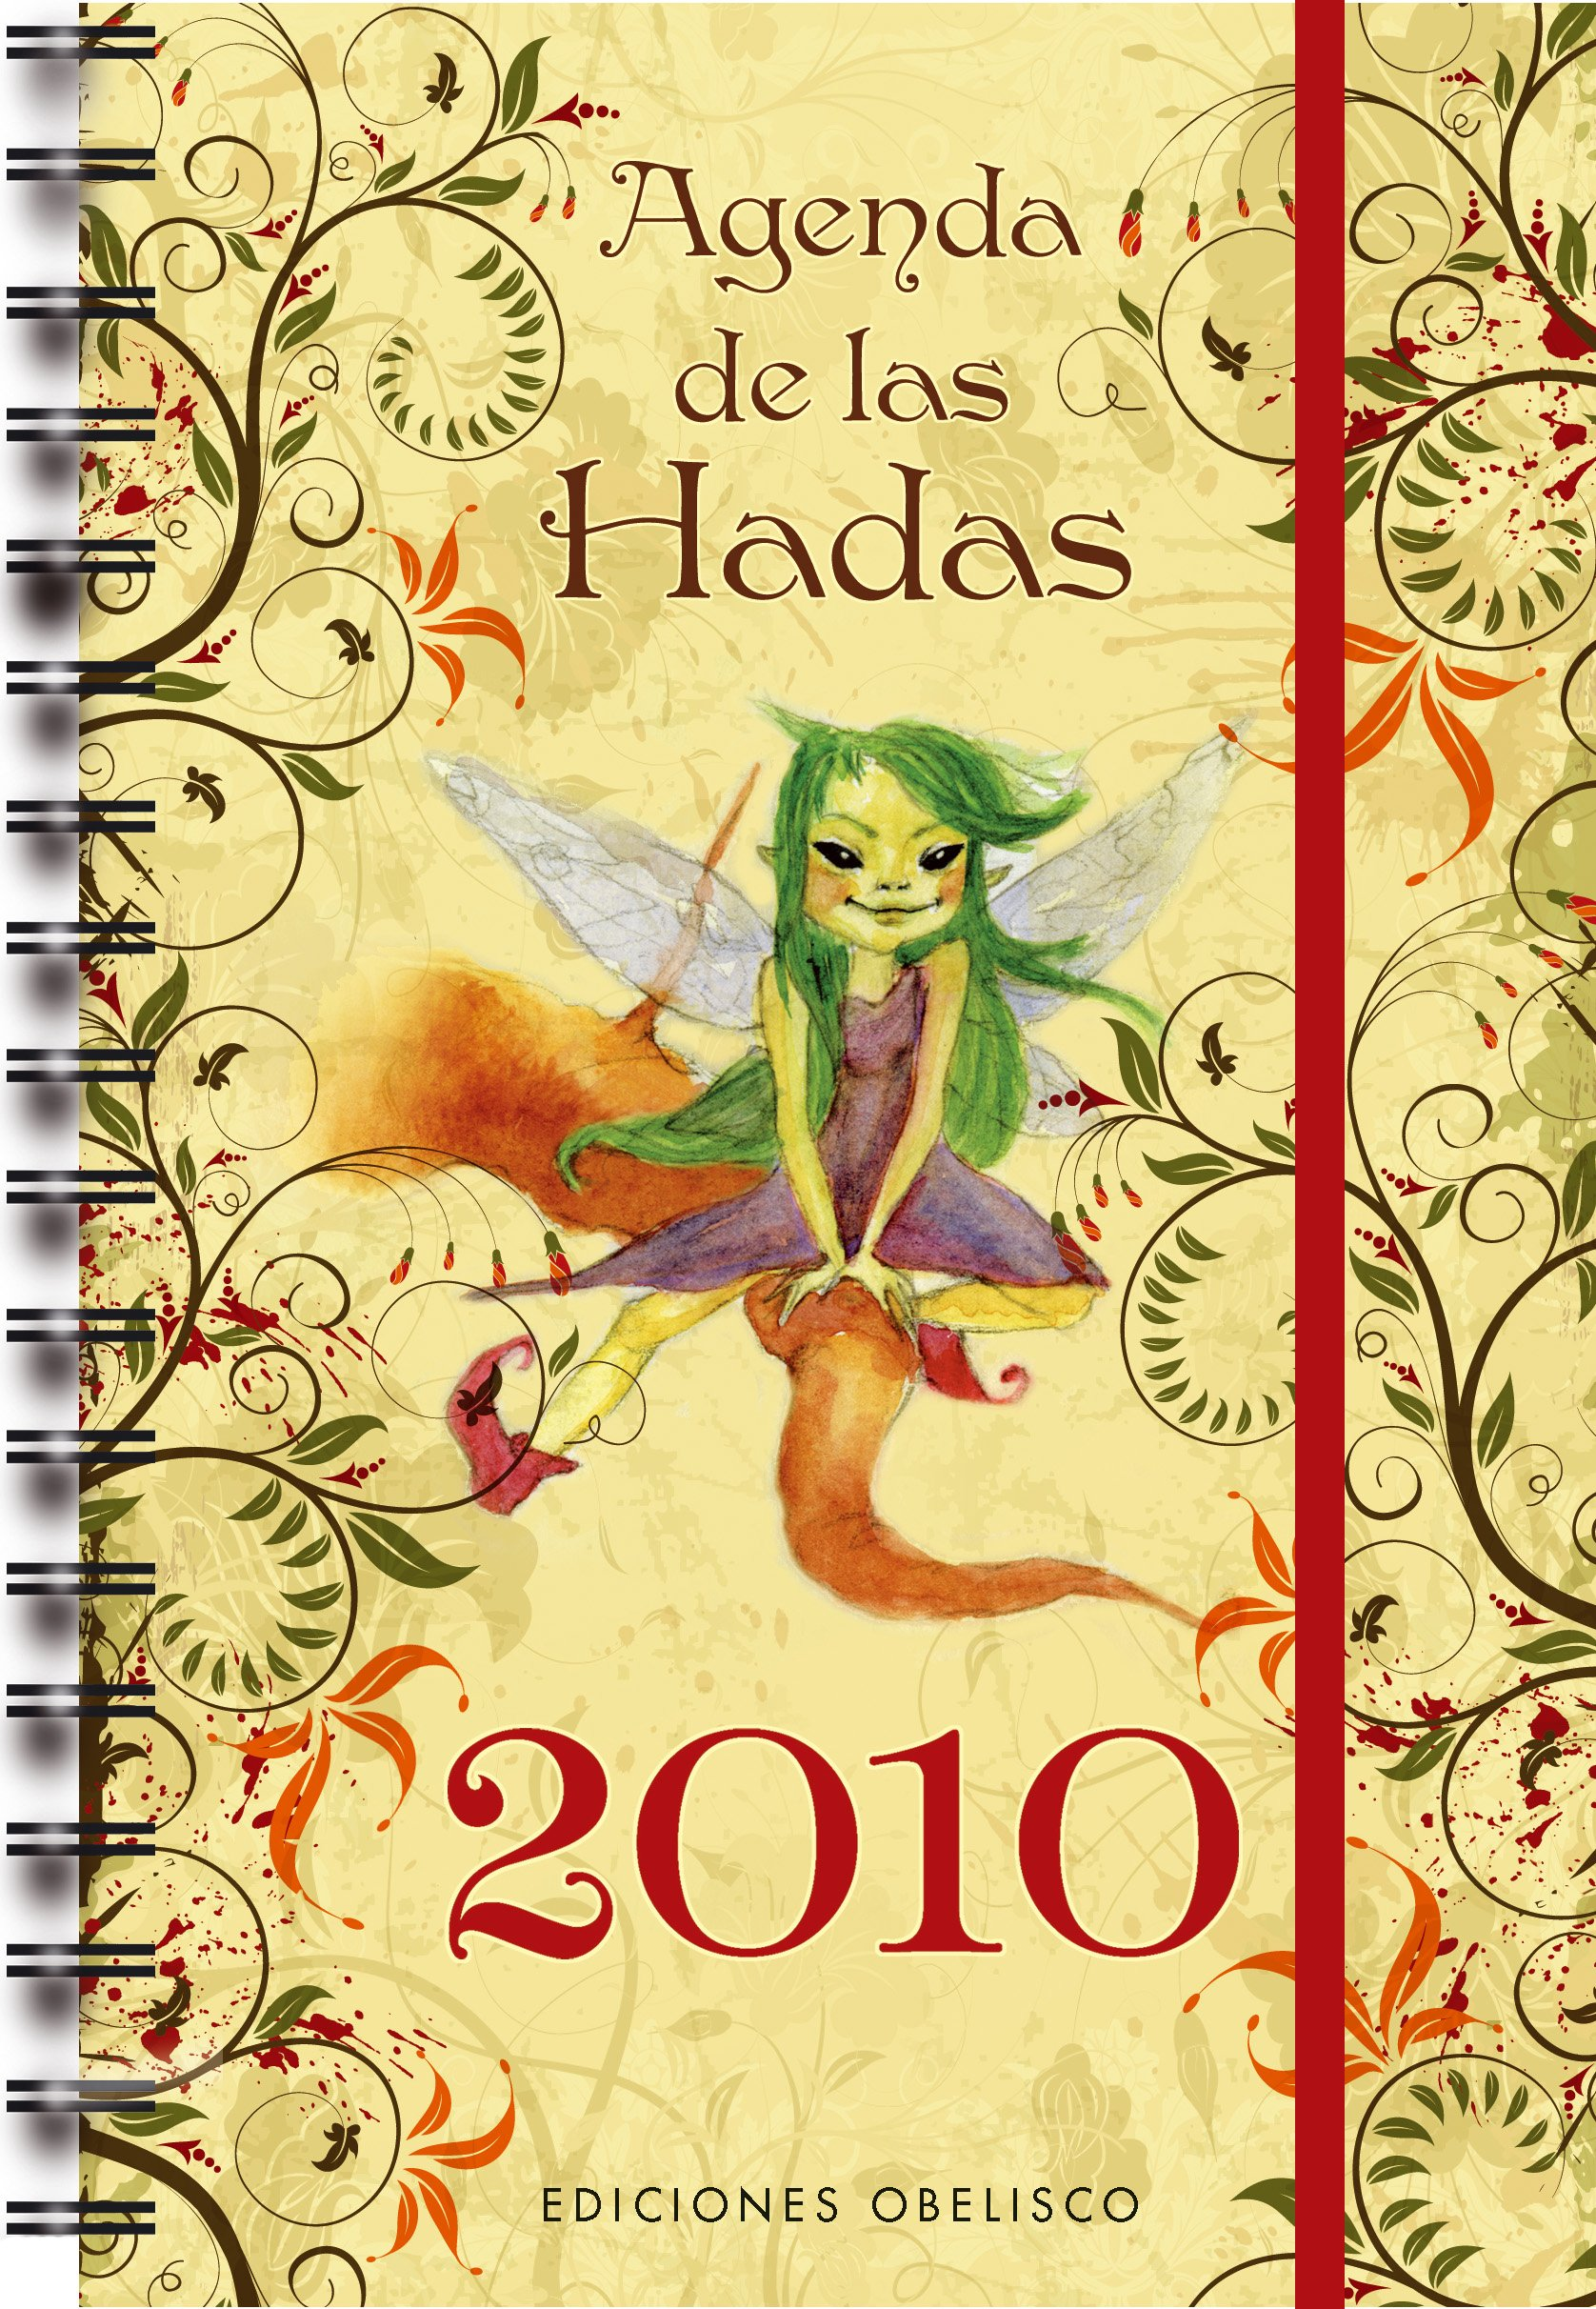 Agenda 2010 de las hadas: Various: 9788497775502: Amazon.com ...